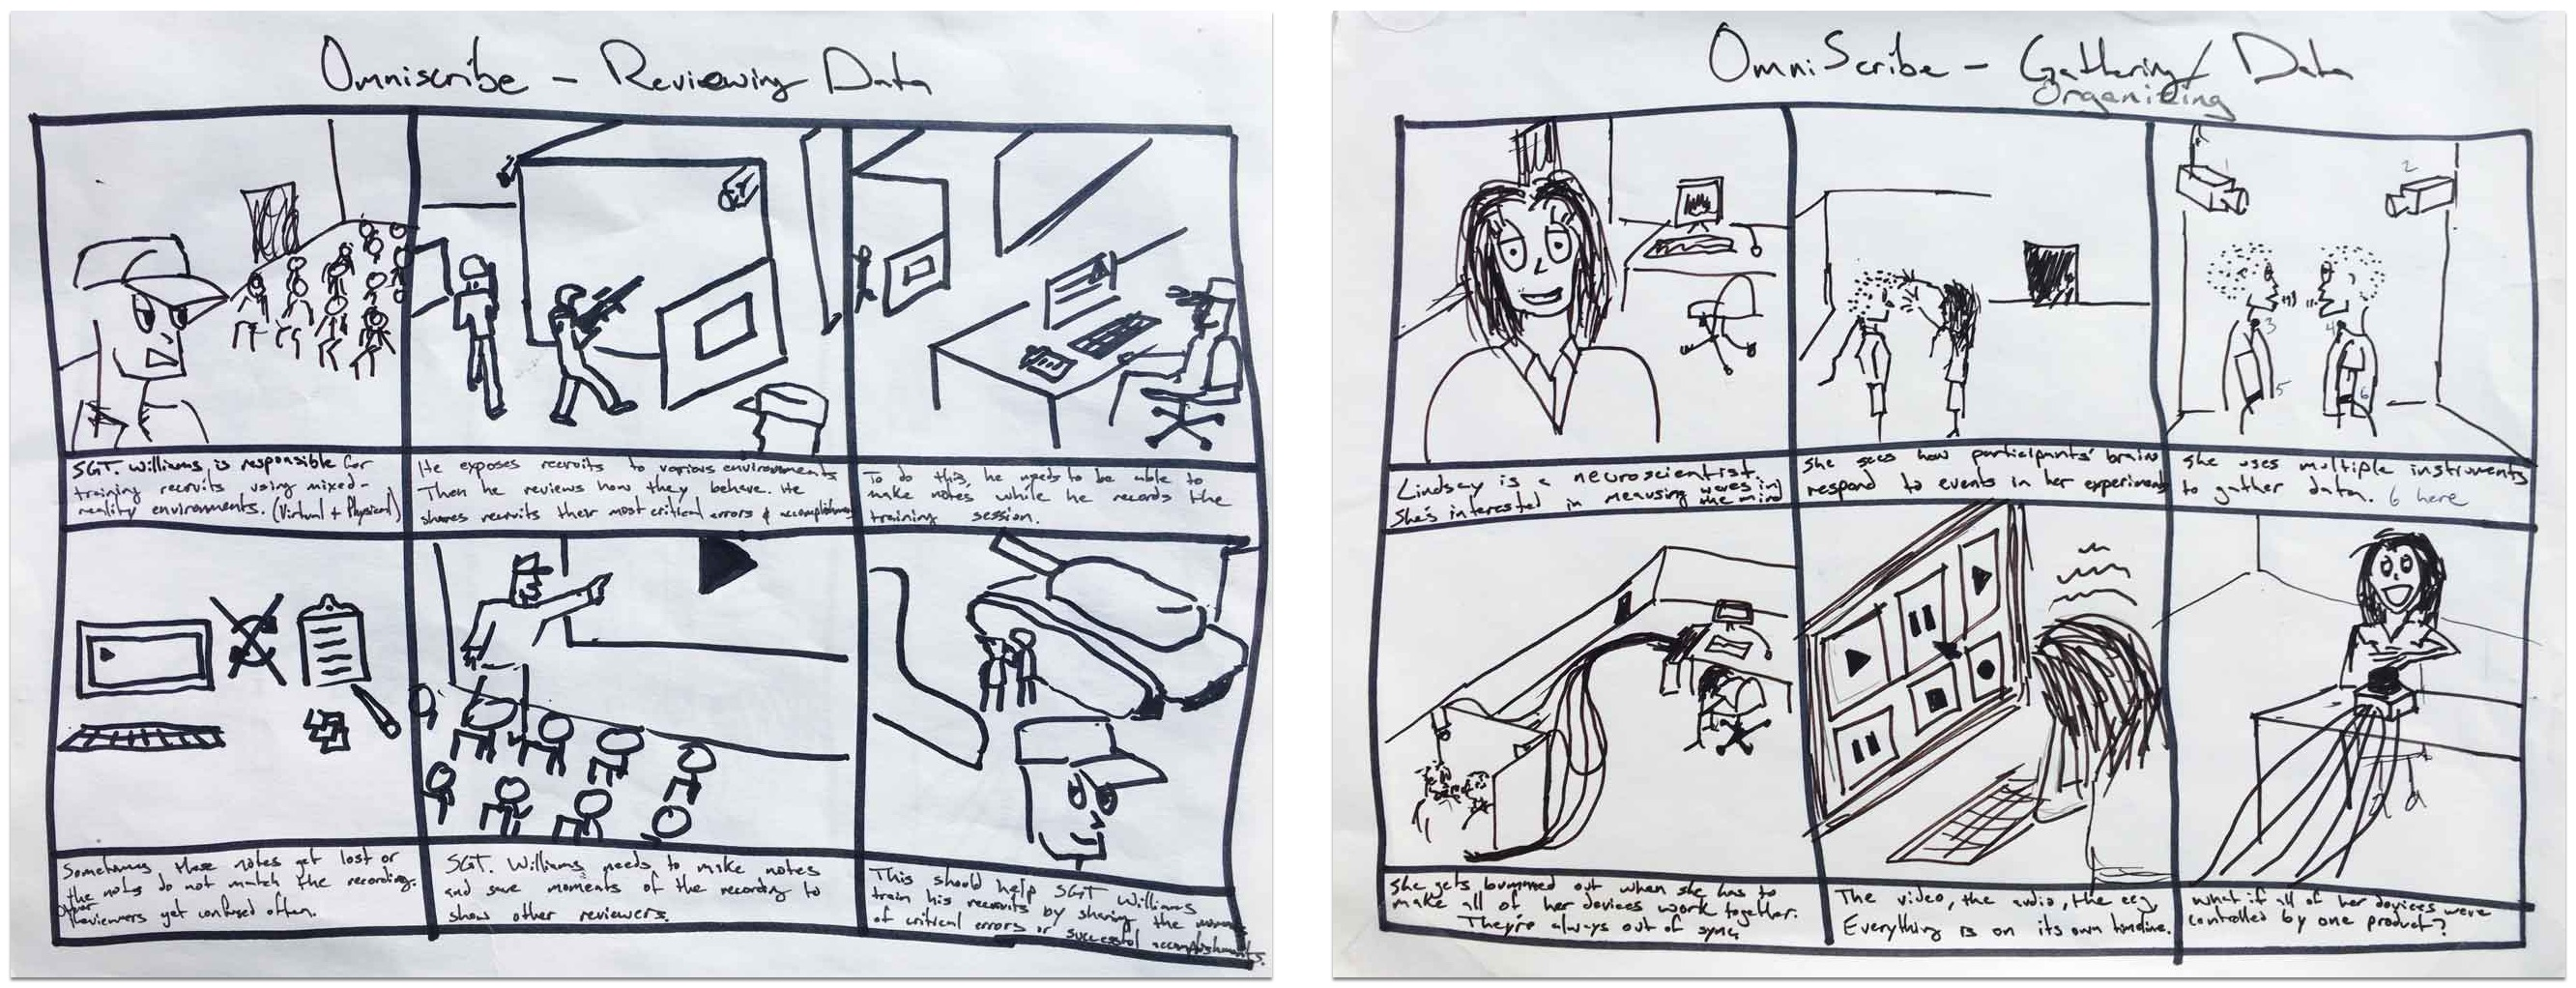 Two storyboards that give the user scenarios some life.